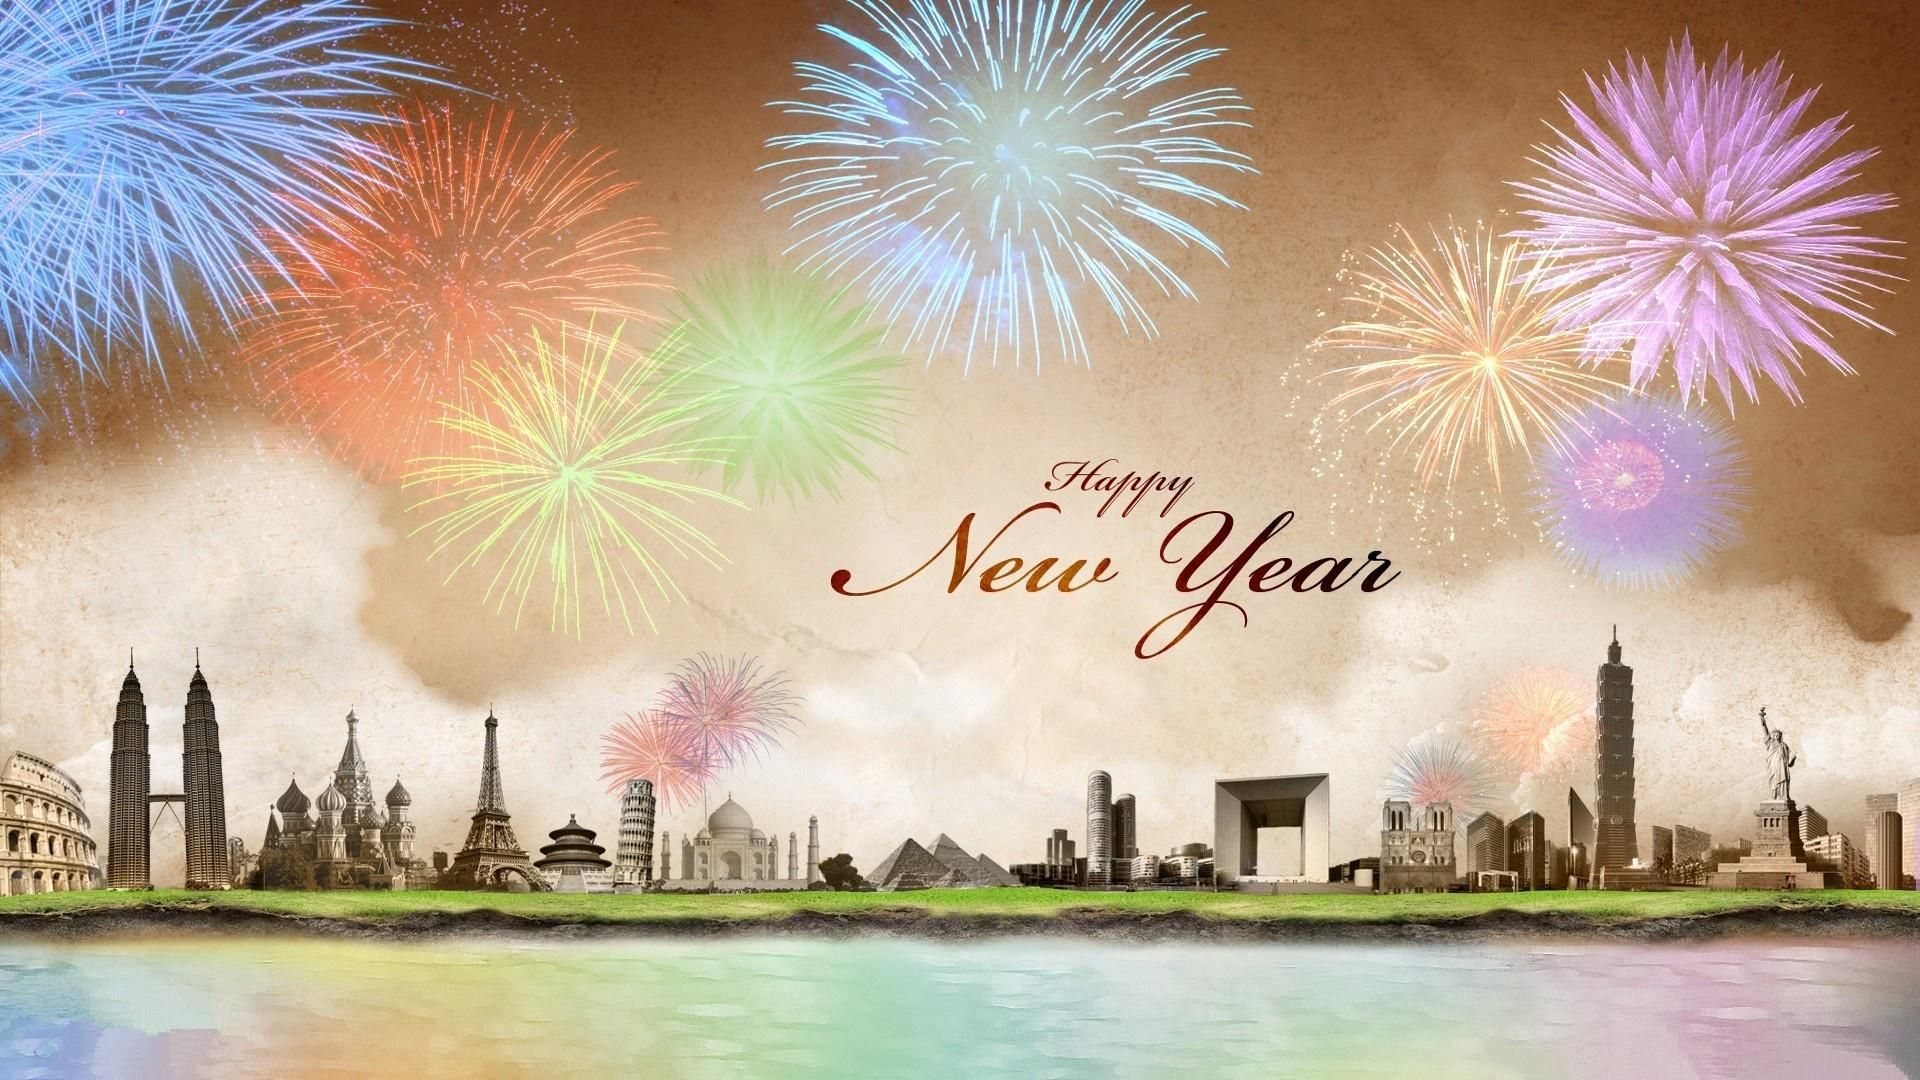 Happy New Year 2020 wallpaper theme